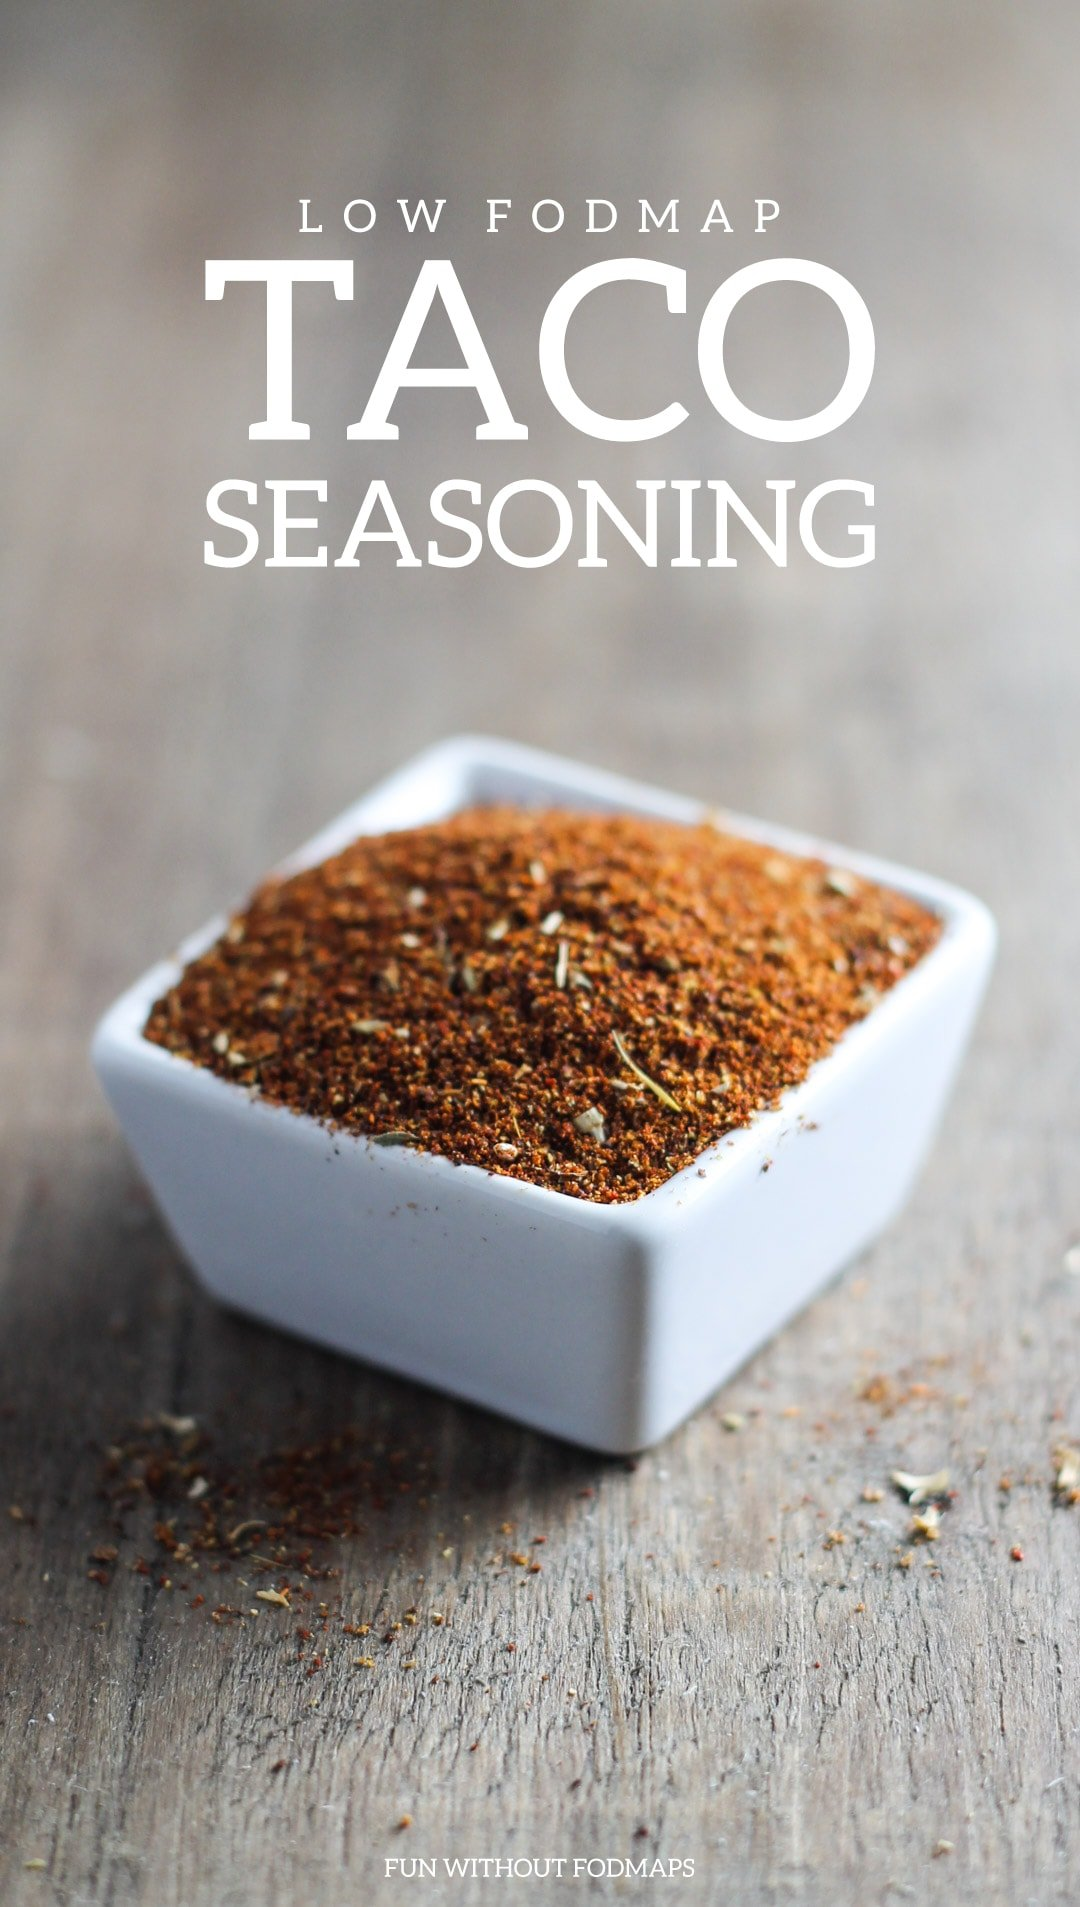 Low FODMAP Taco Seasoning in a small white dish on a wood surface